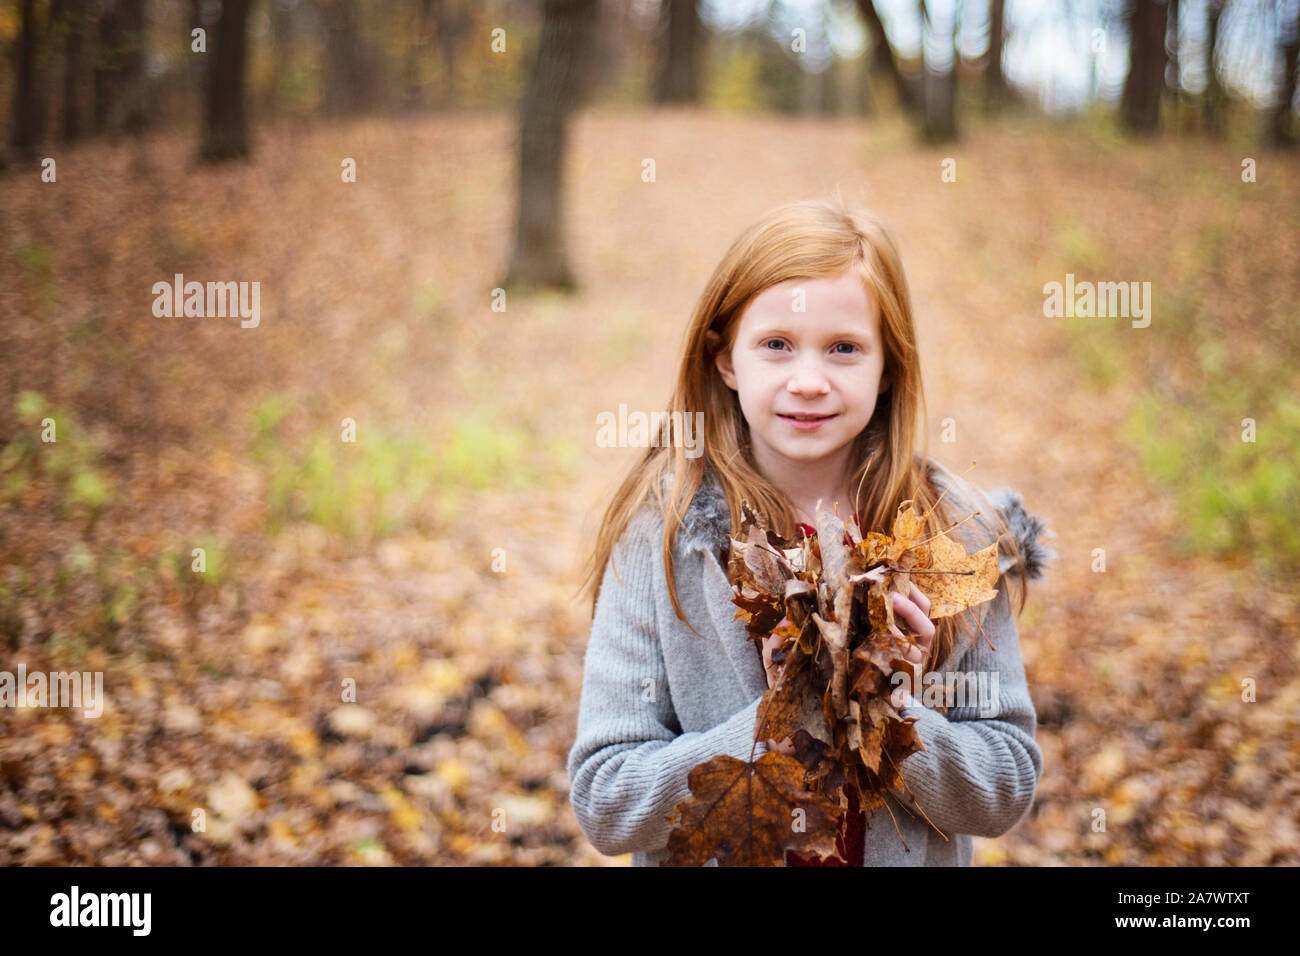 Young Red Hair Girl Playing Outside in Fall Leaves Stock Photo